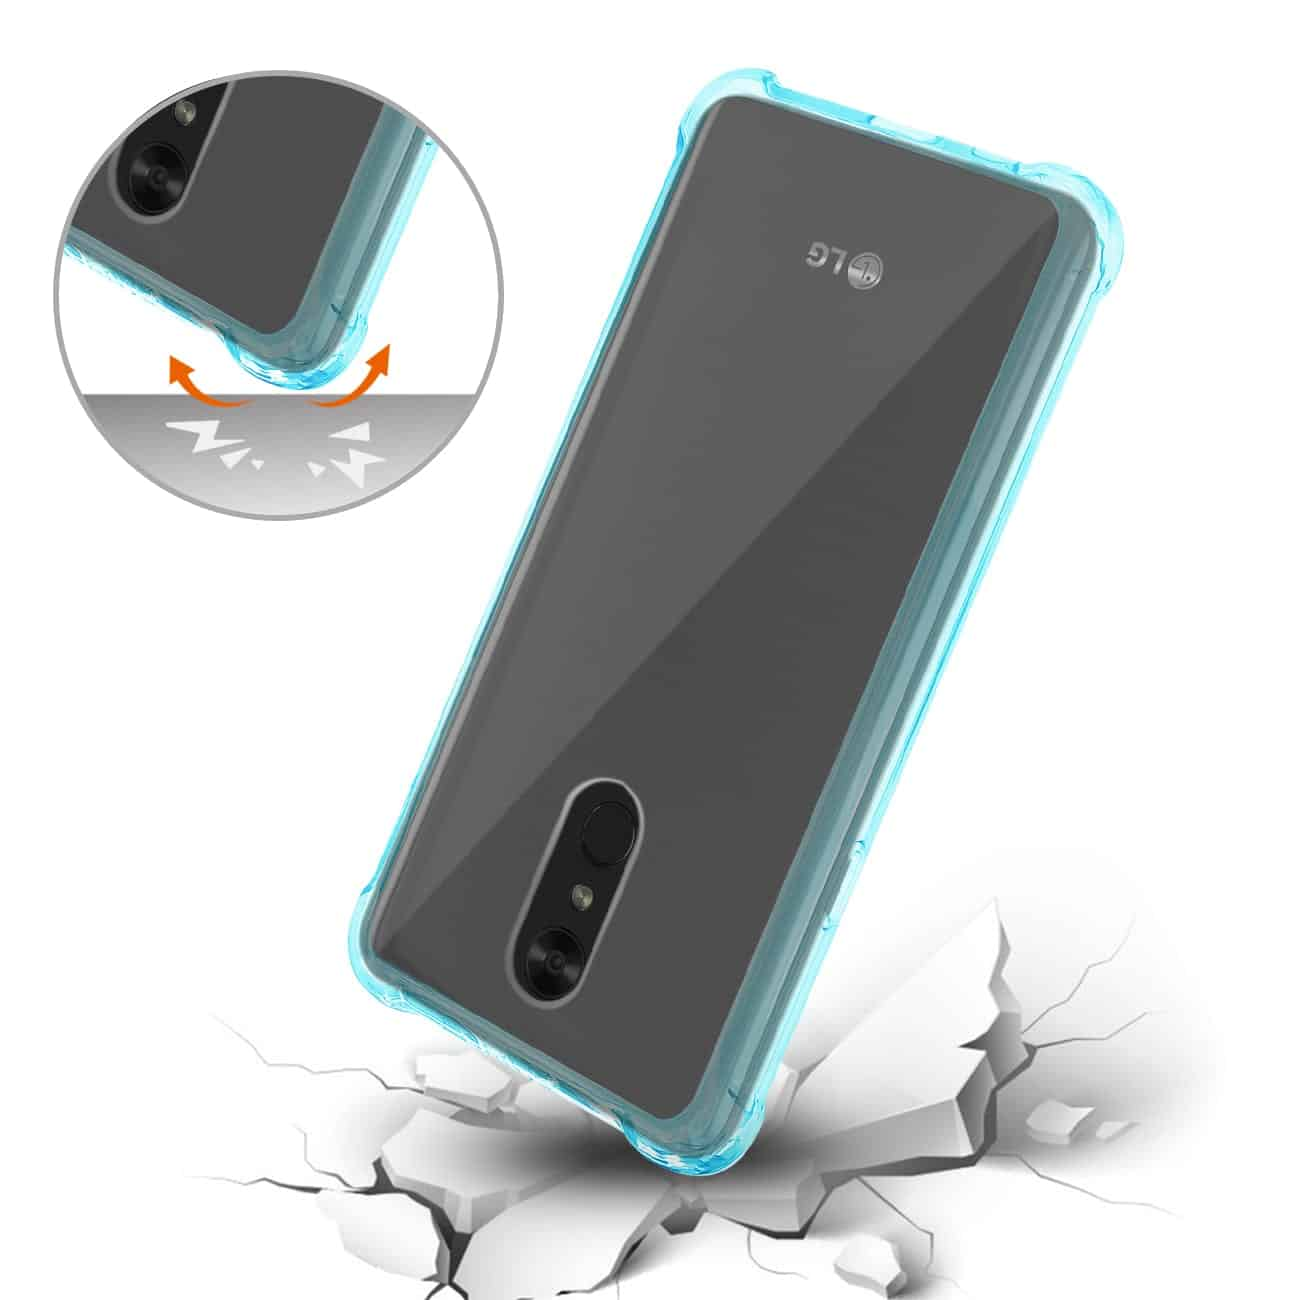 LG Stylo 4 Clear Bumper Case With Air Cushion Protection In Clear Navy